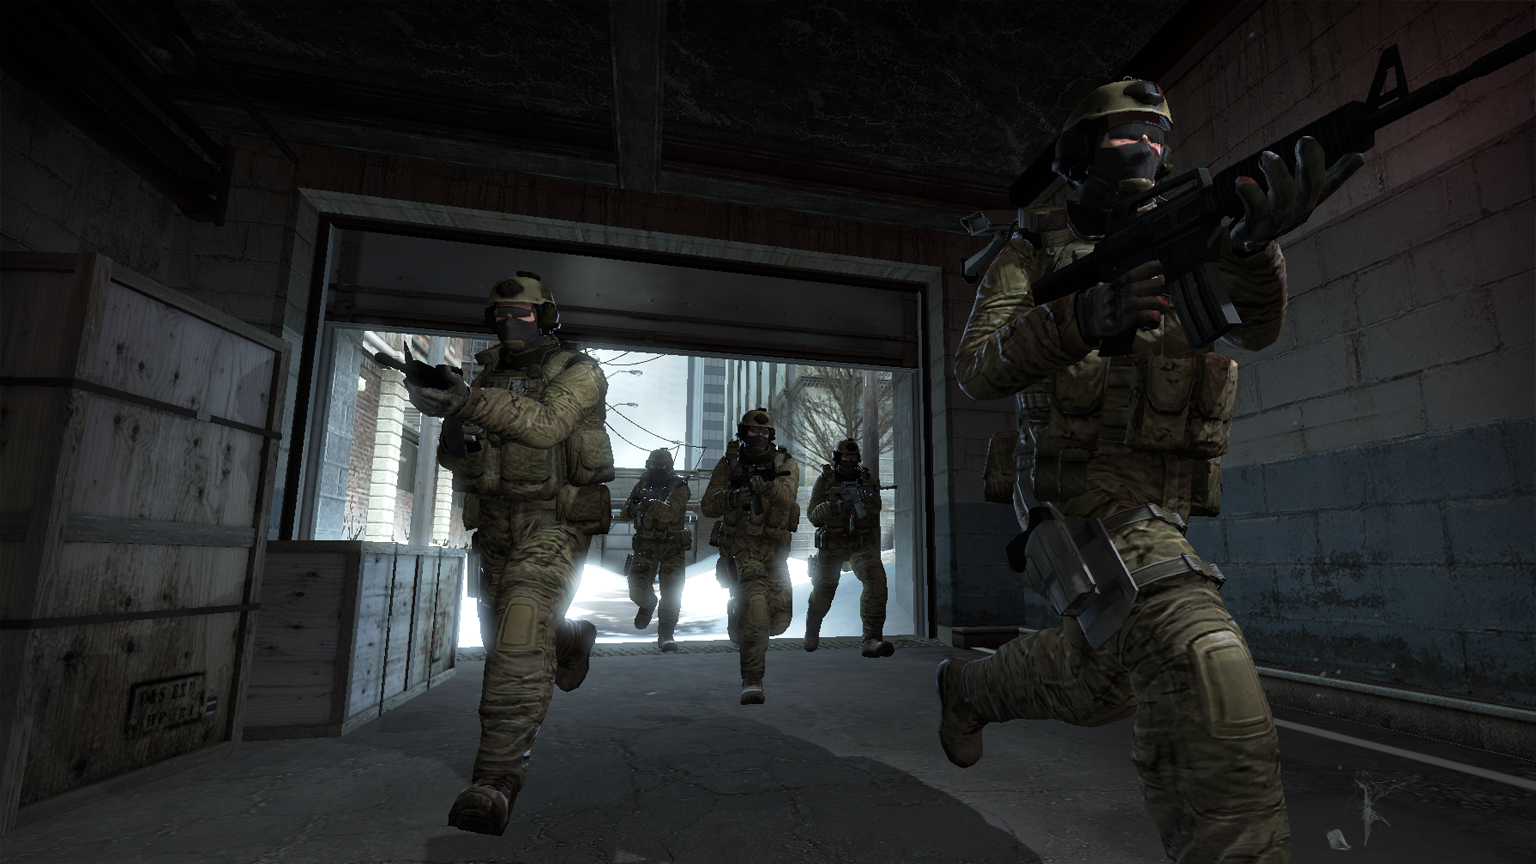 MLG continues eSports at X Games with Counter-Strike: Global Offensive tournament